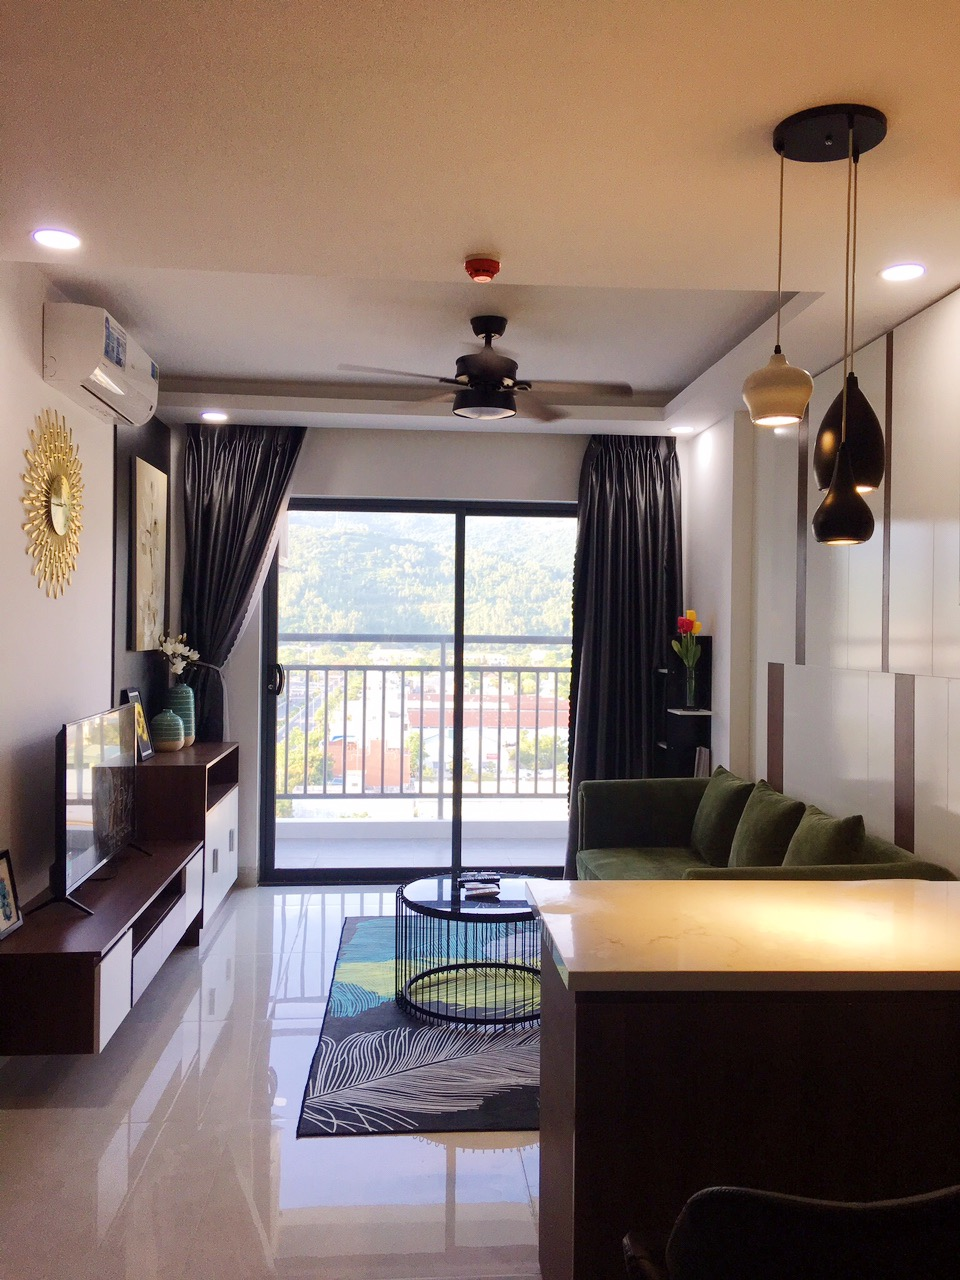 Son Tra Ocean View 1 bedroom apartment on 10th floor – A886